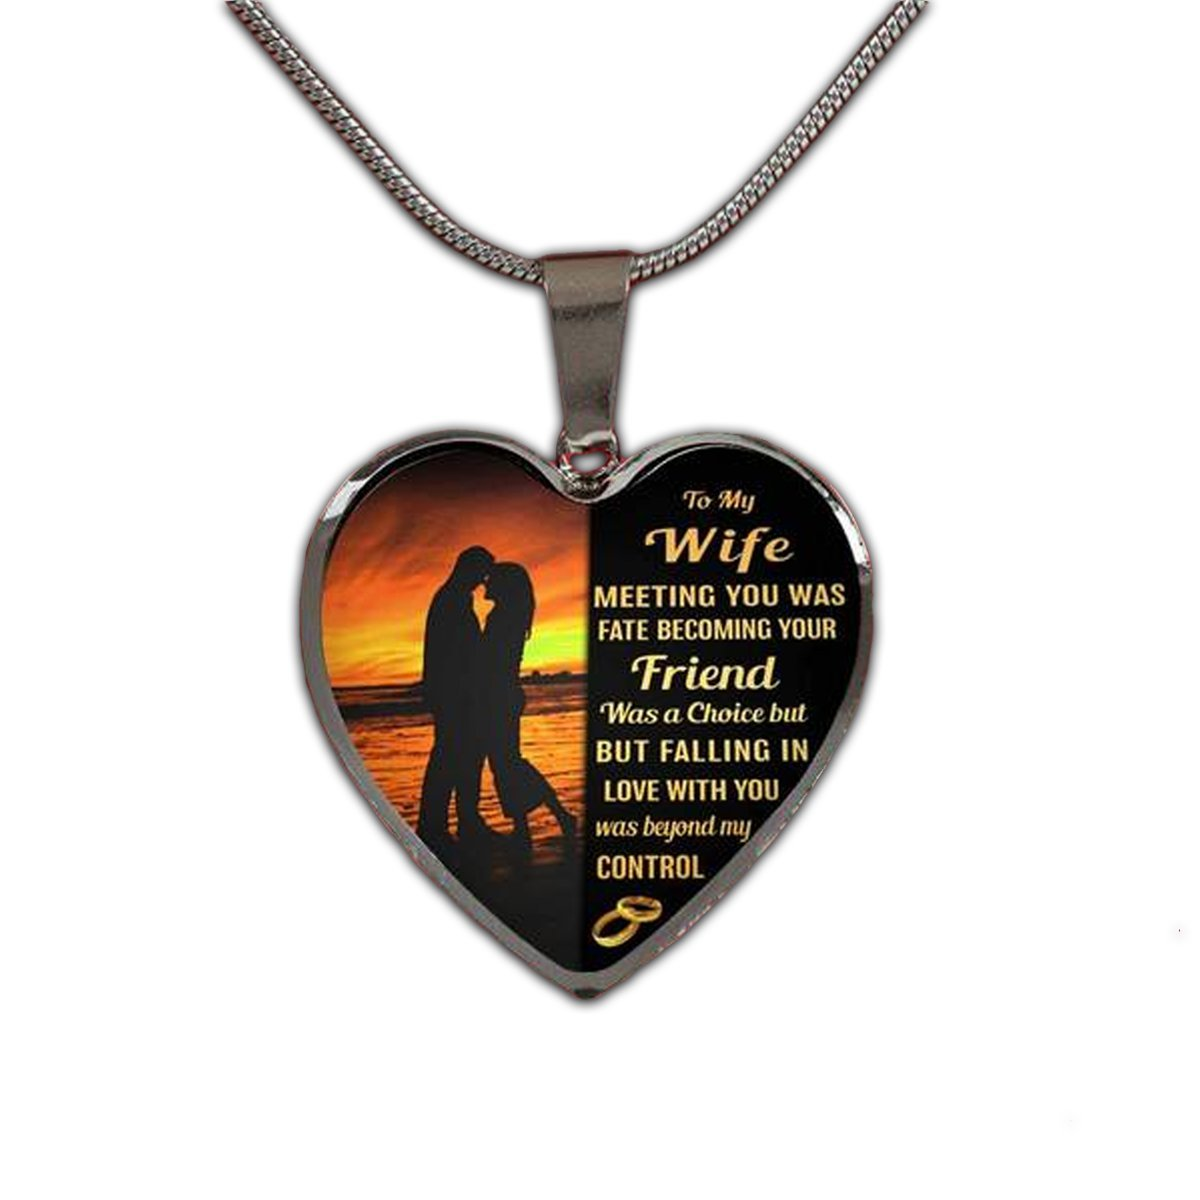 Stashix To My Wife Meeting You Was Fate Becoming Your Friend Luxury Silver Pendant Necklace Marriage Anniversary Love Wedding Birthday Gift For Her From Husband Hubby Customized Personalized Quote